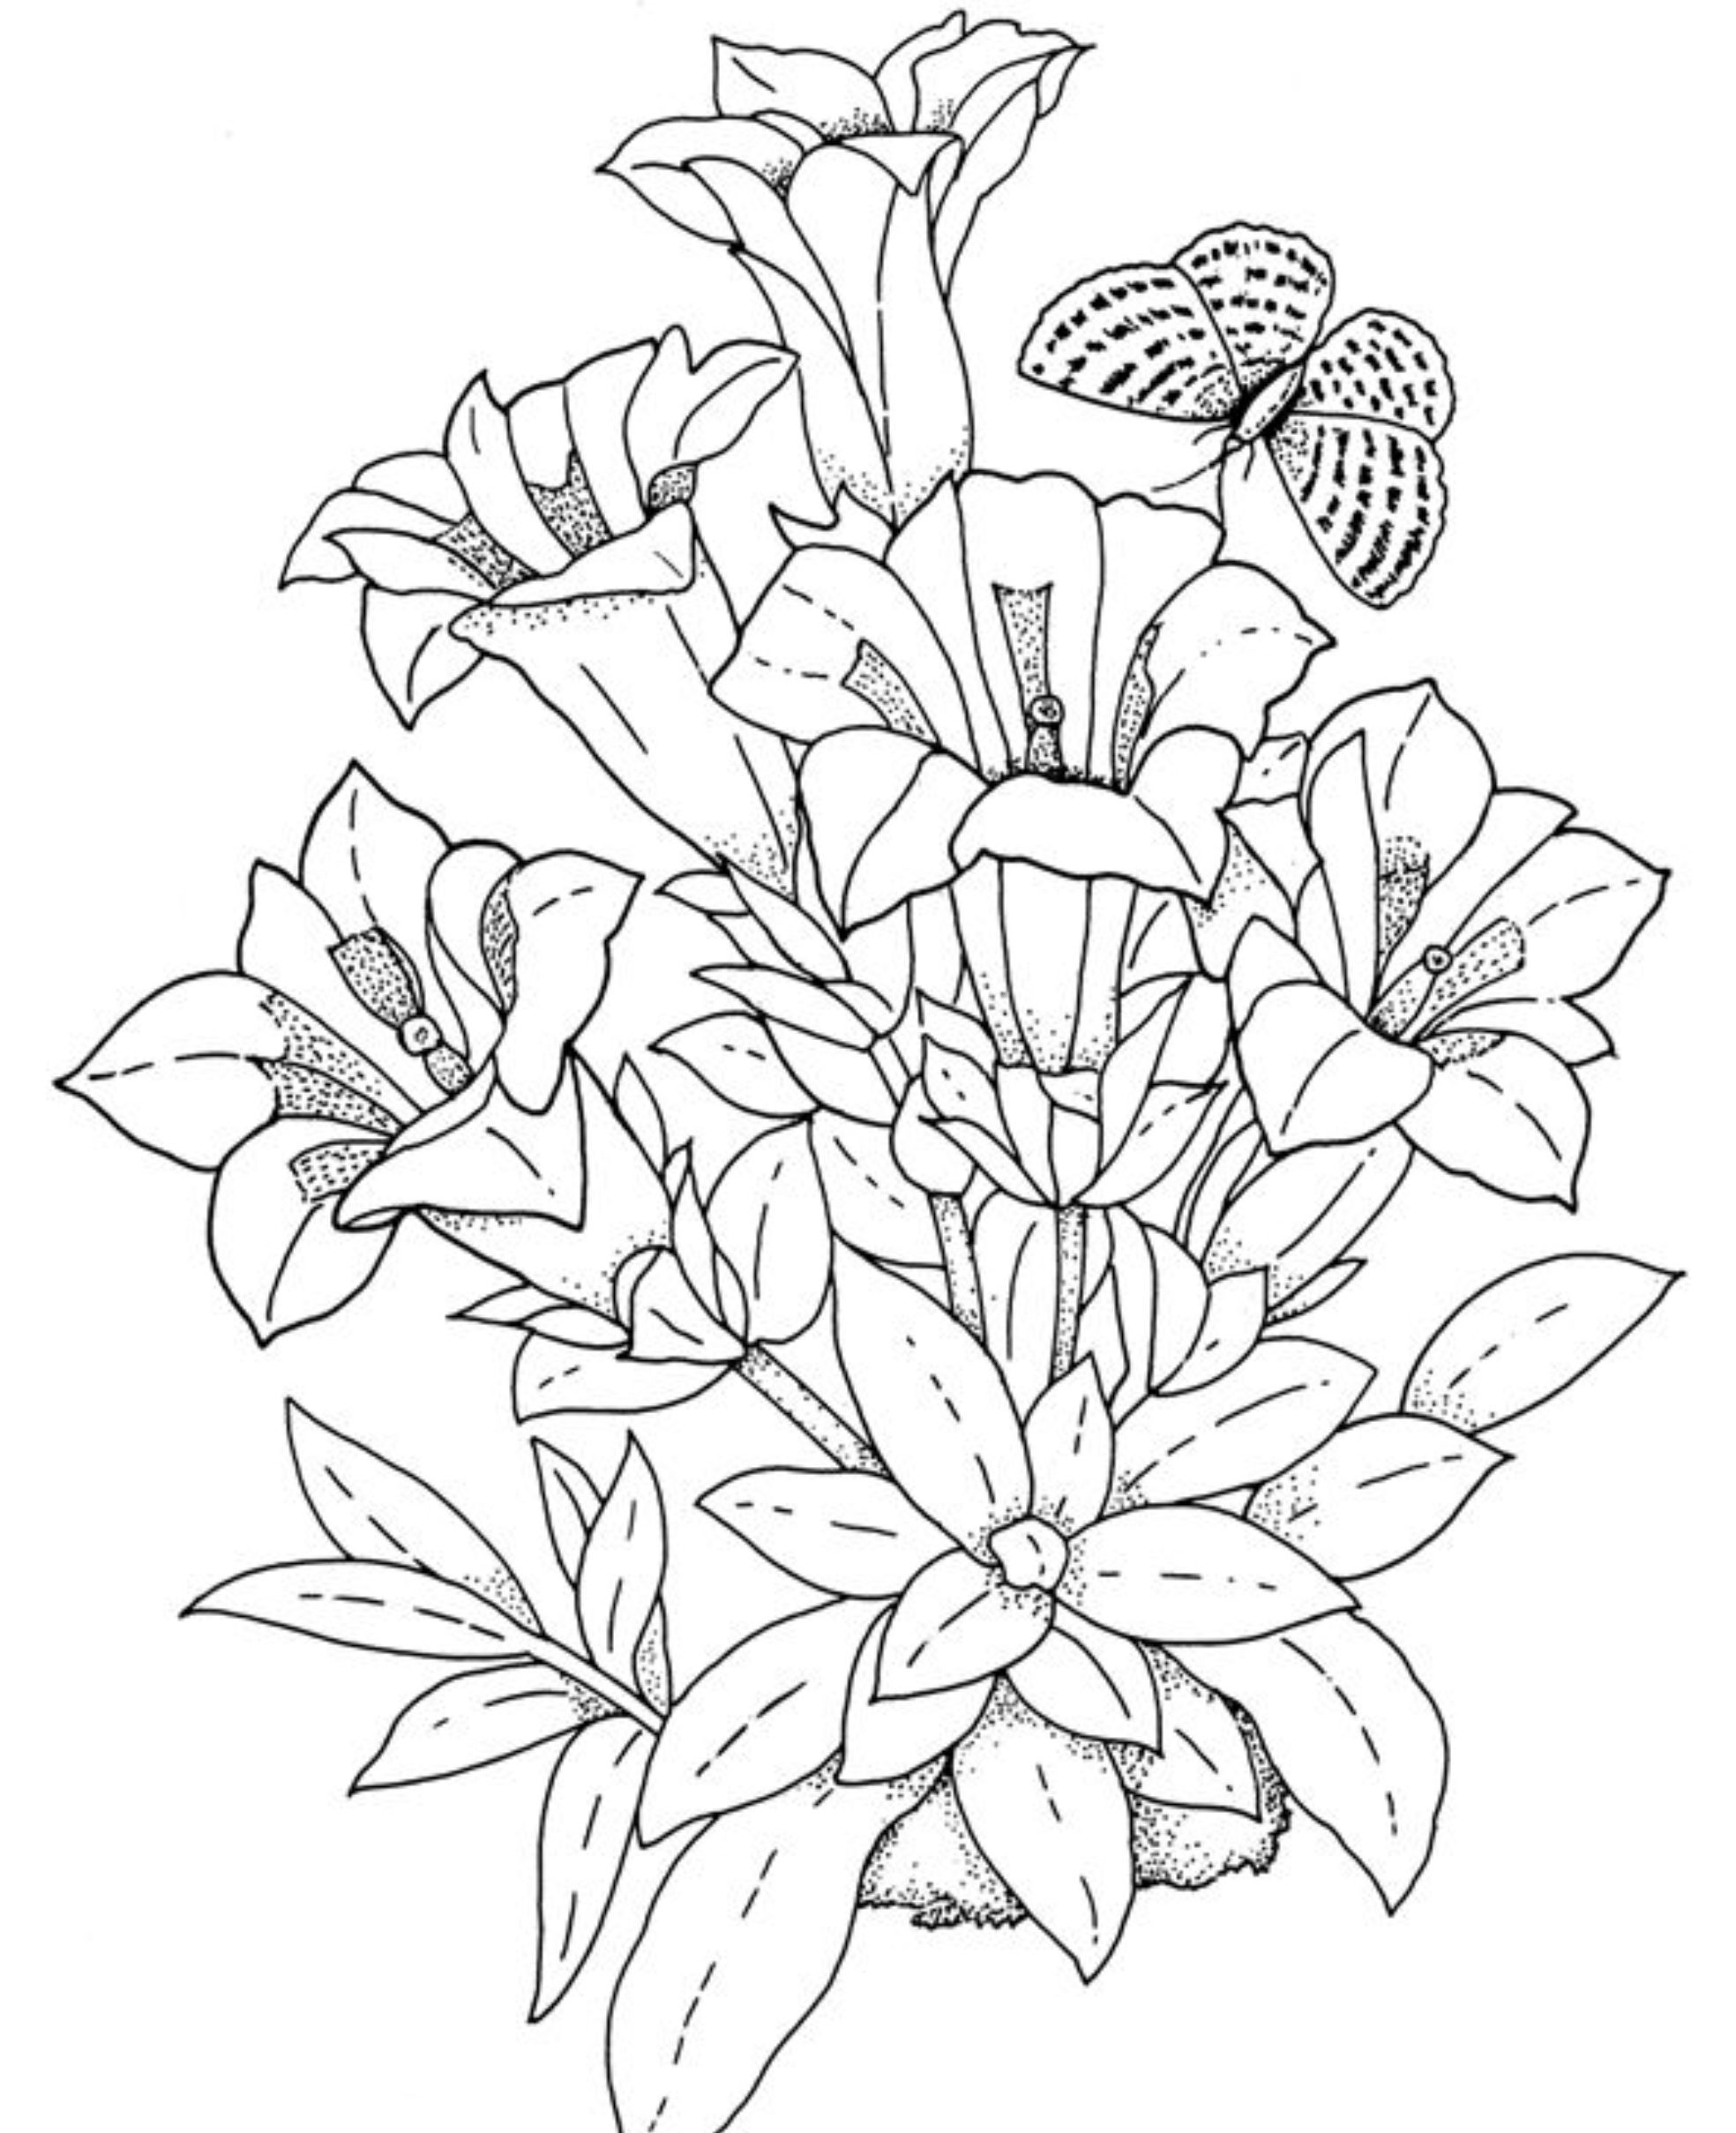 coloring pages of flowers flower coloring pages for adults at getdrawings free coloring of flowers pages